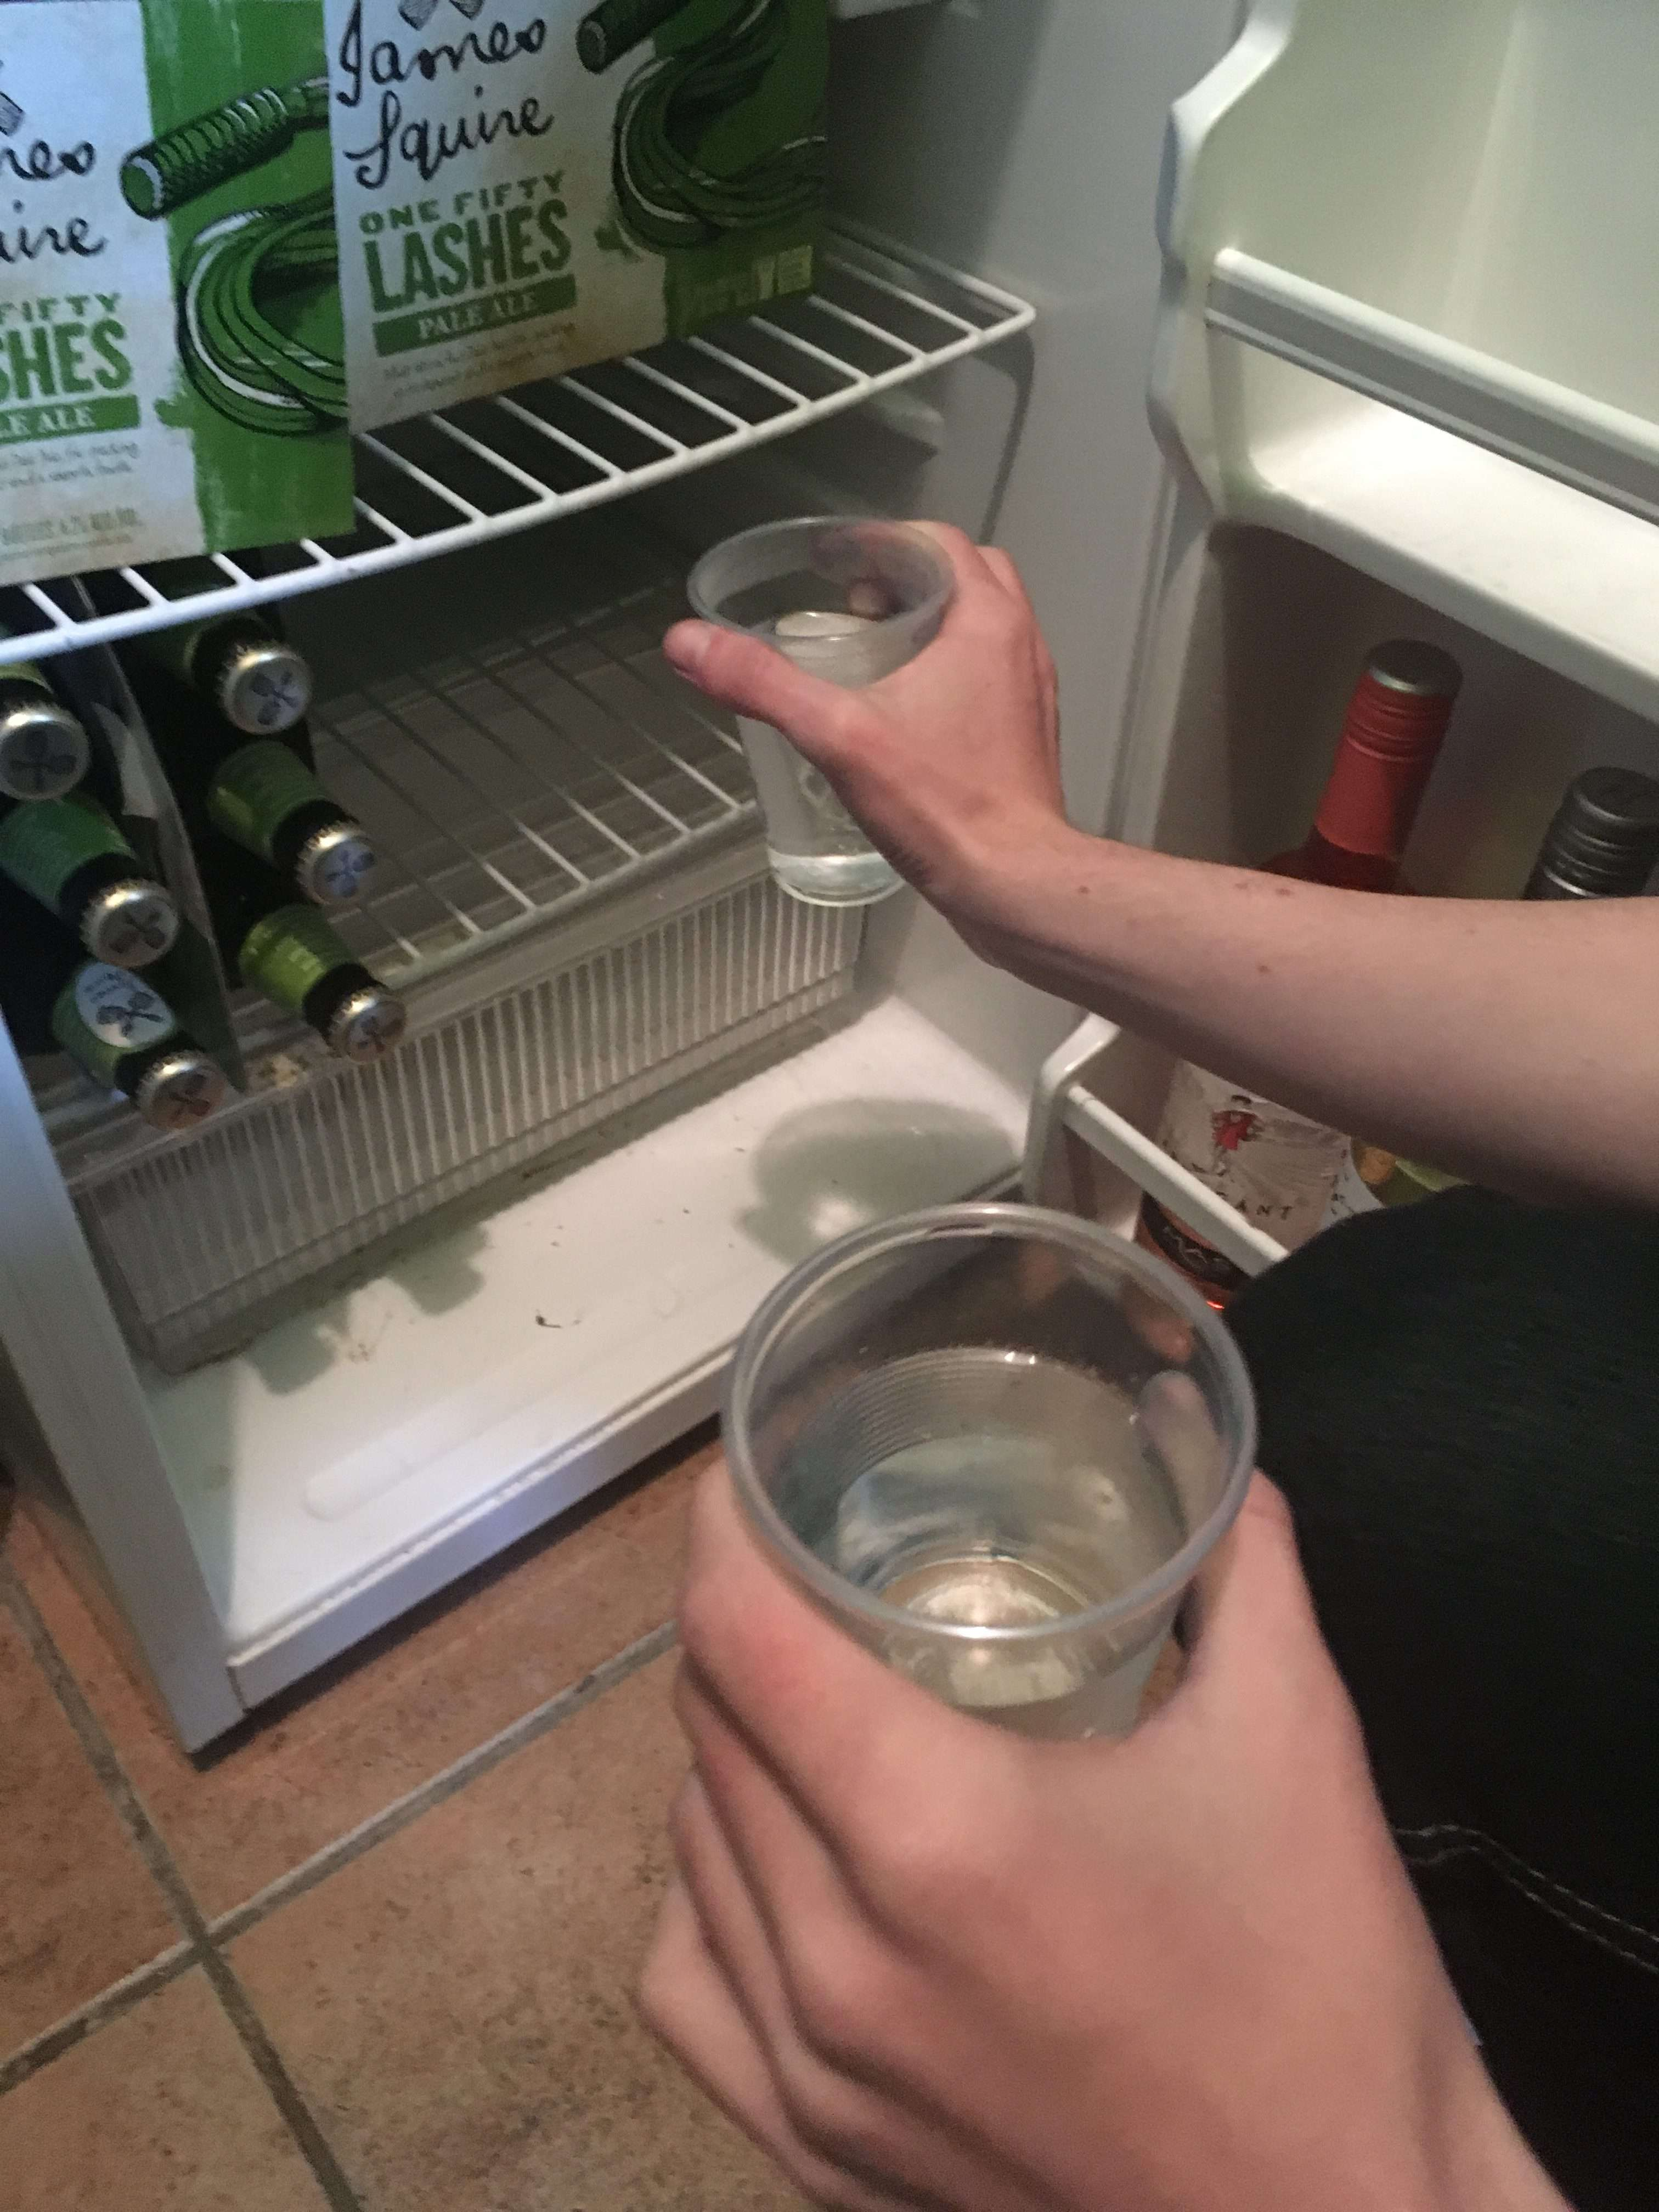 What freezes first, hot or cold water Science Experiment - putting water in freezer